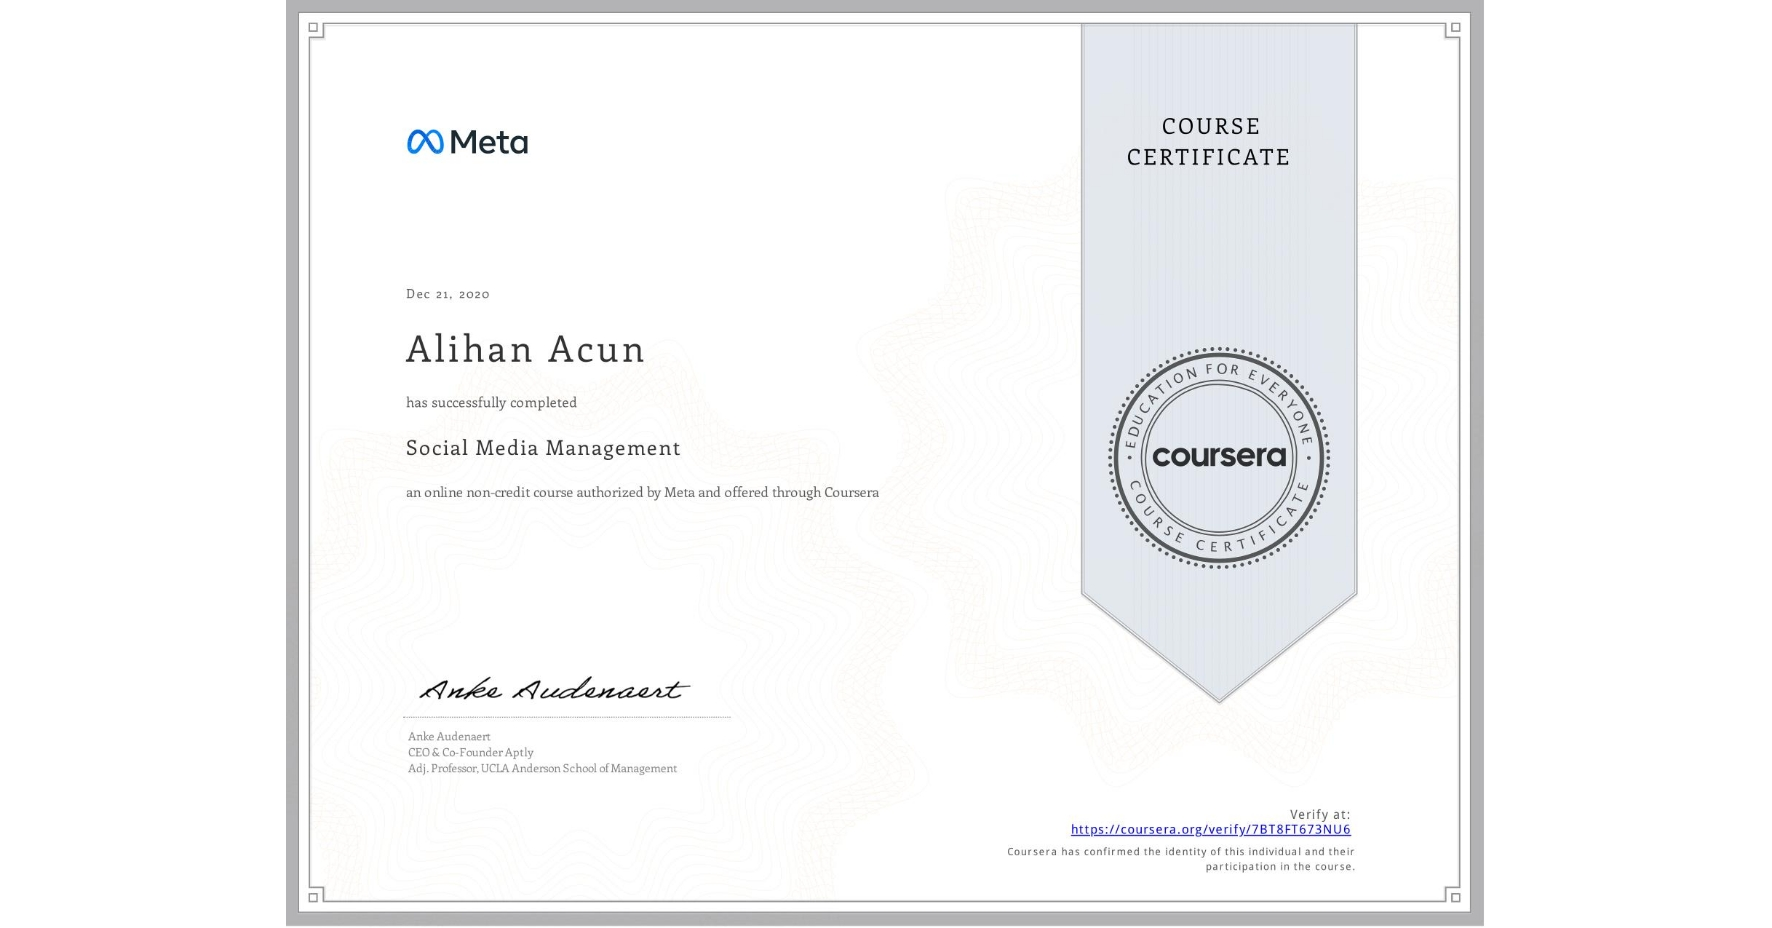 View certificate for Alihan Acun, Social Media Management , an online non-credit course authorized by Facebook and offered through Coursera